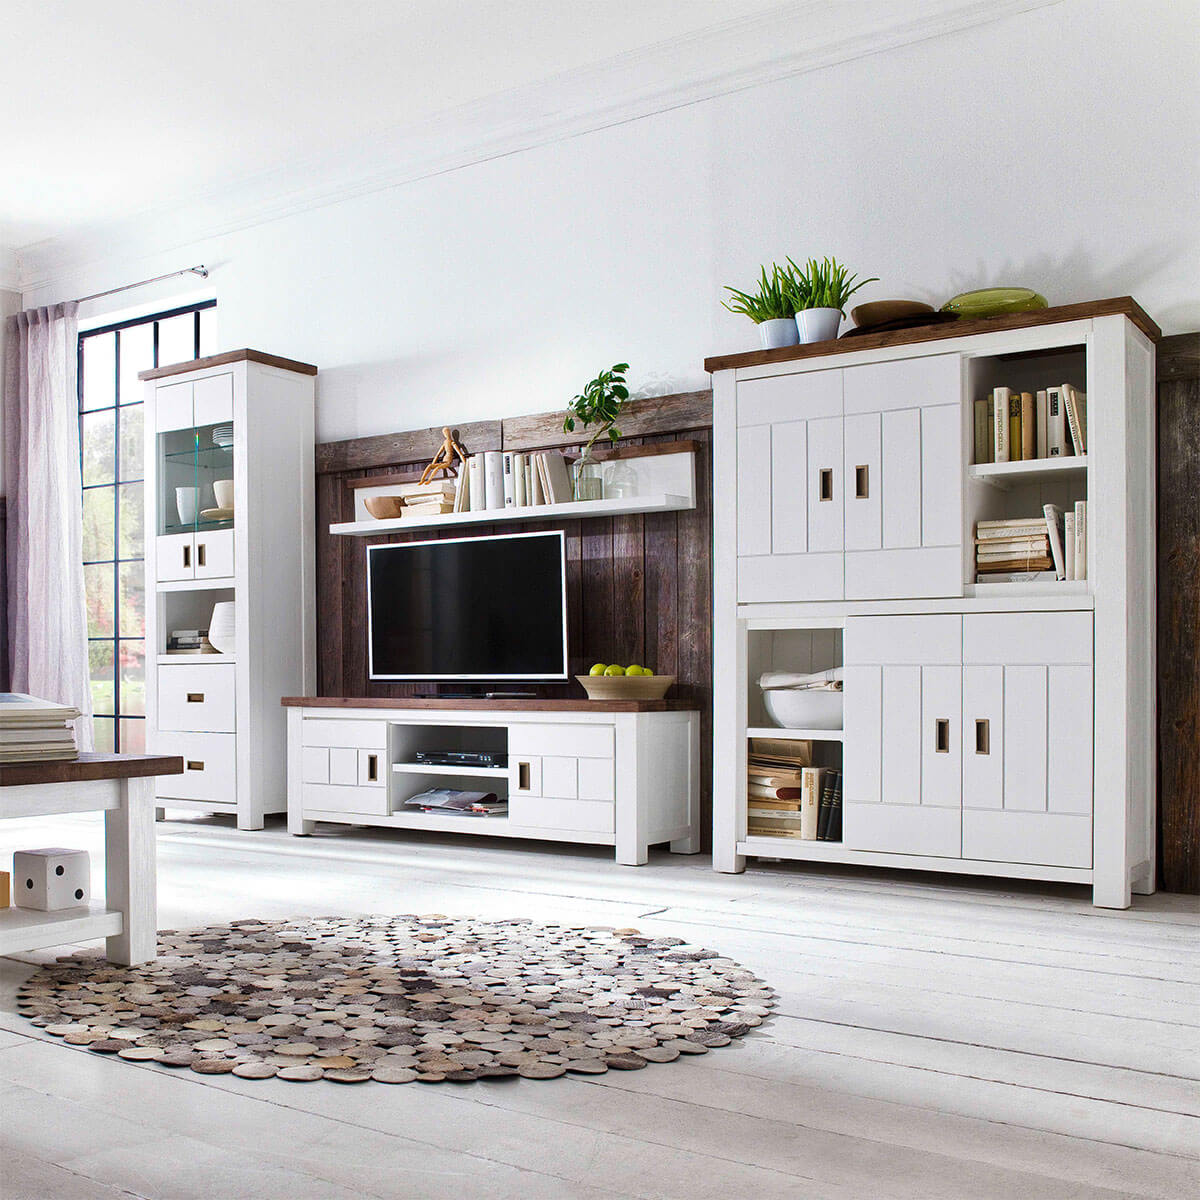 wandregal lyron in akazie massiv wei braun. Black Bedroom Furniture Sets. Home Design Ideas